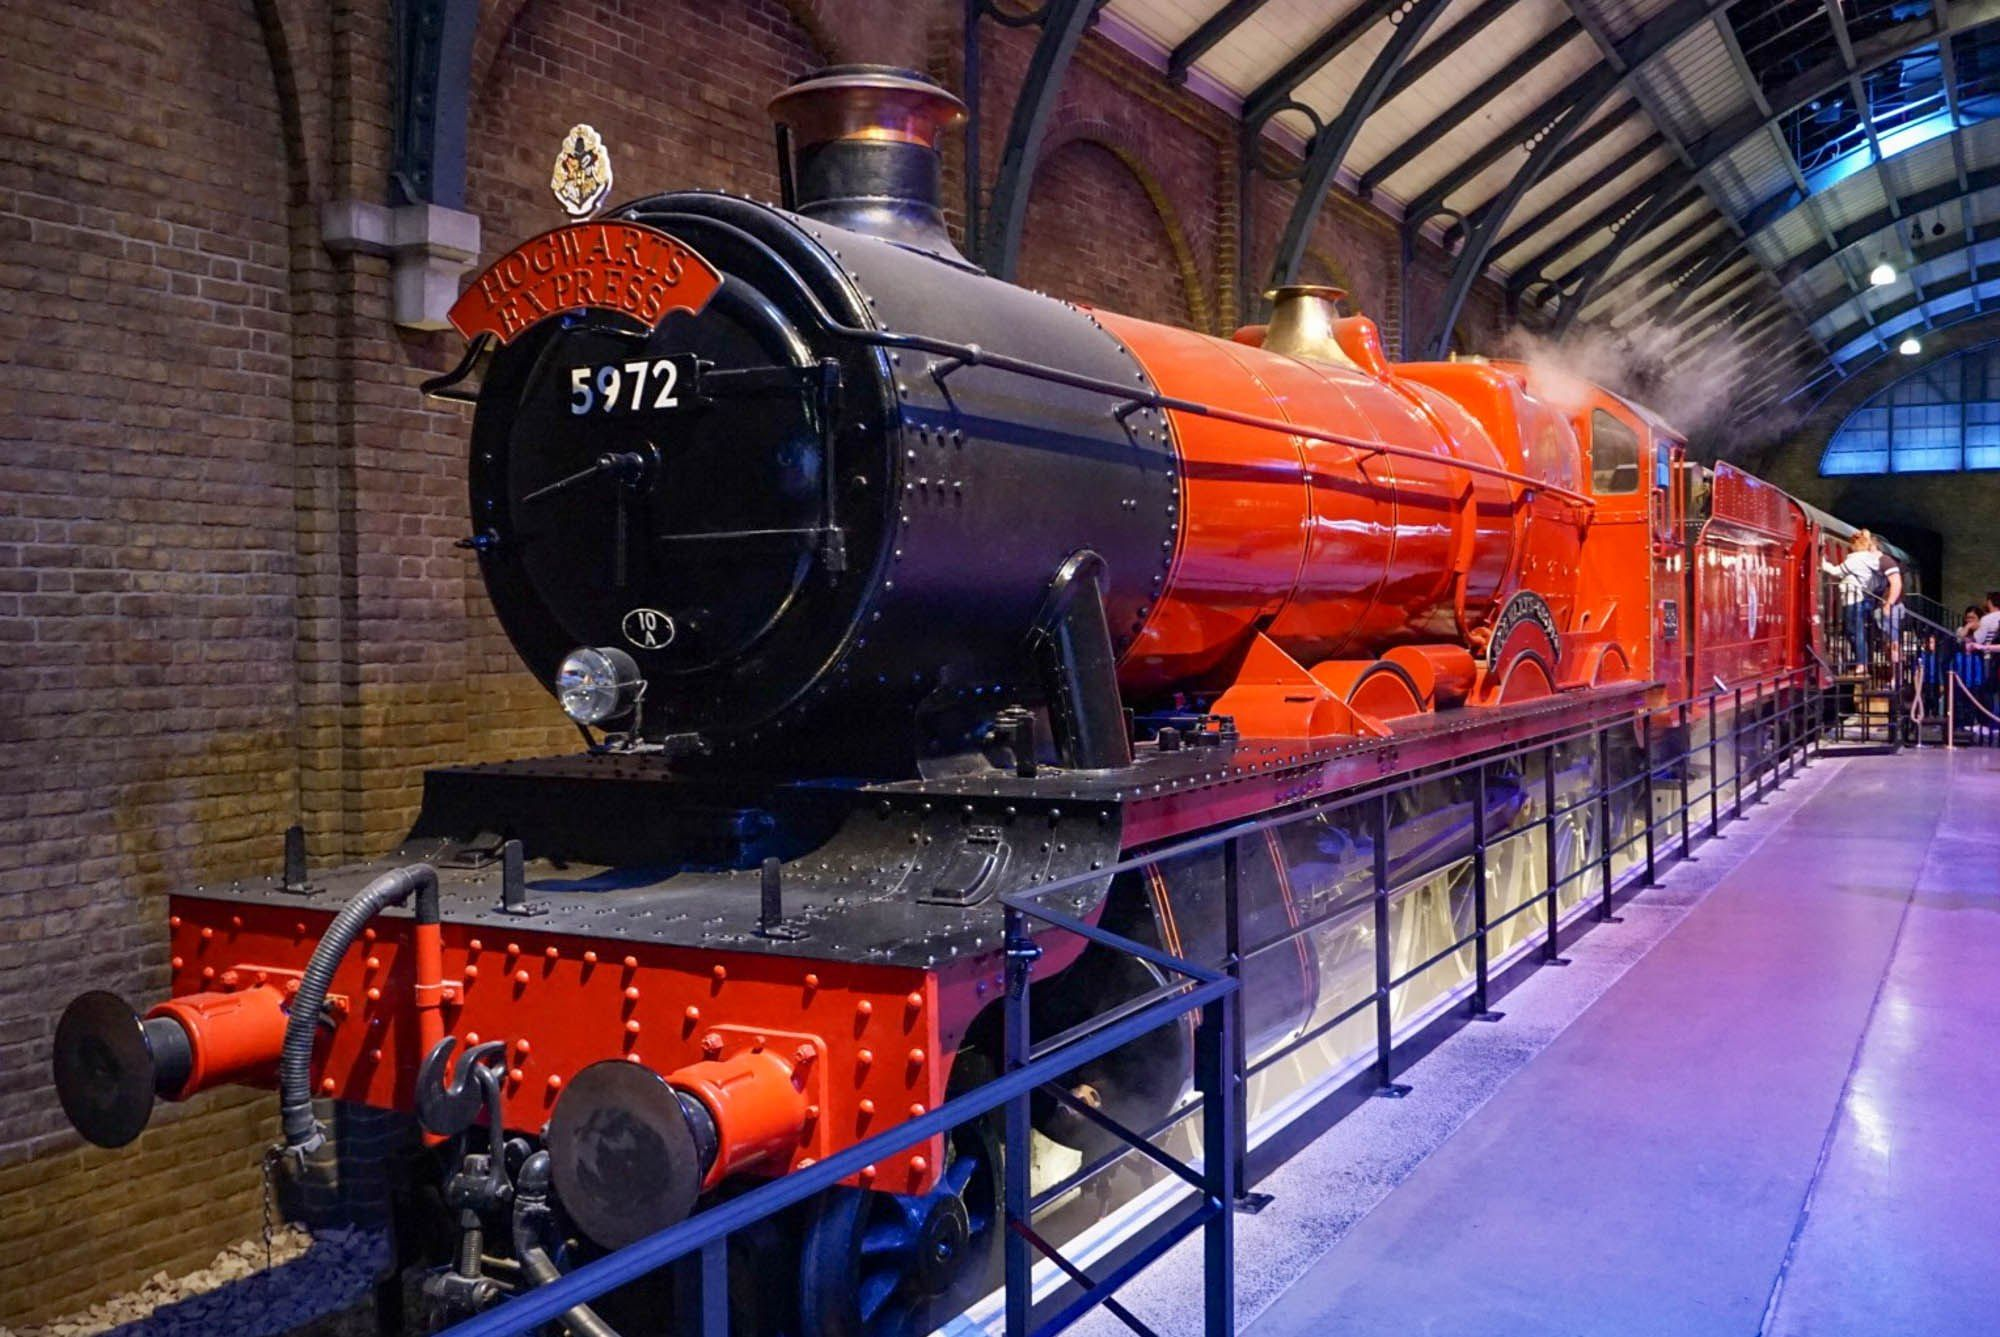 f359b520118b1a3ab6ee278ee6e41475 - How Do I Get To Harry Potter World From London By Train